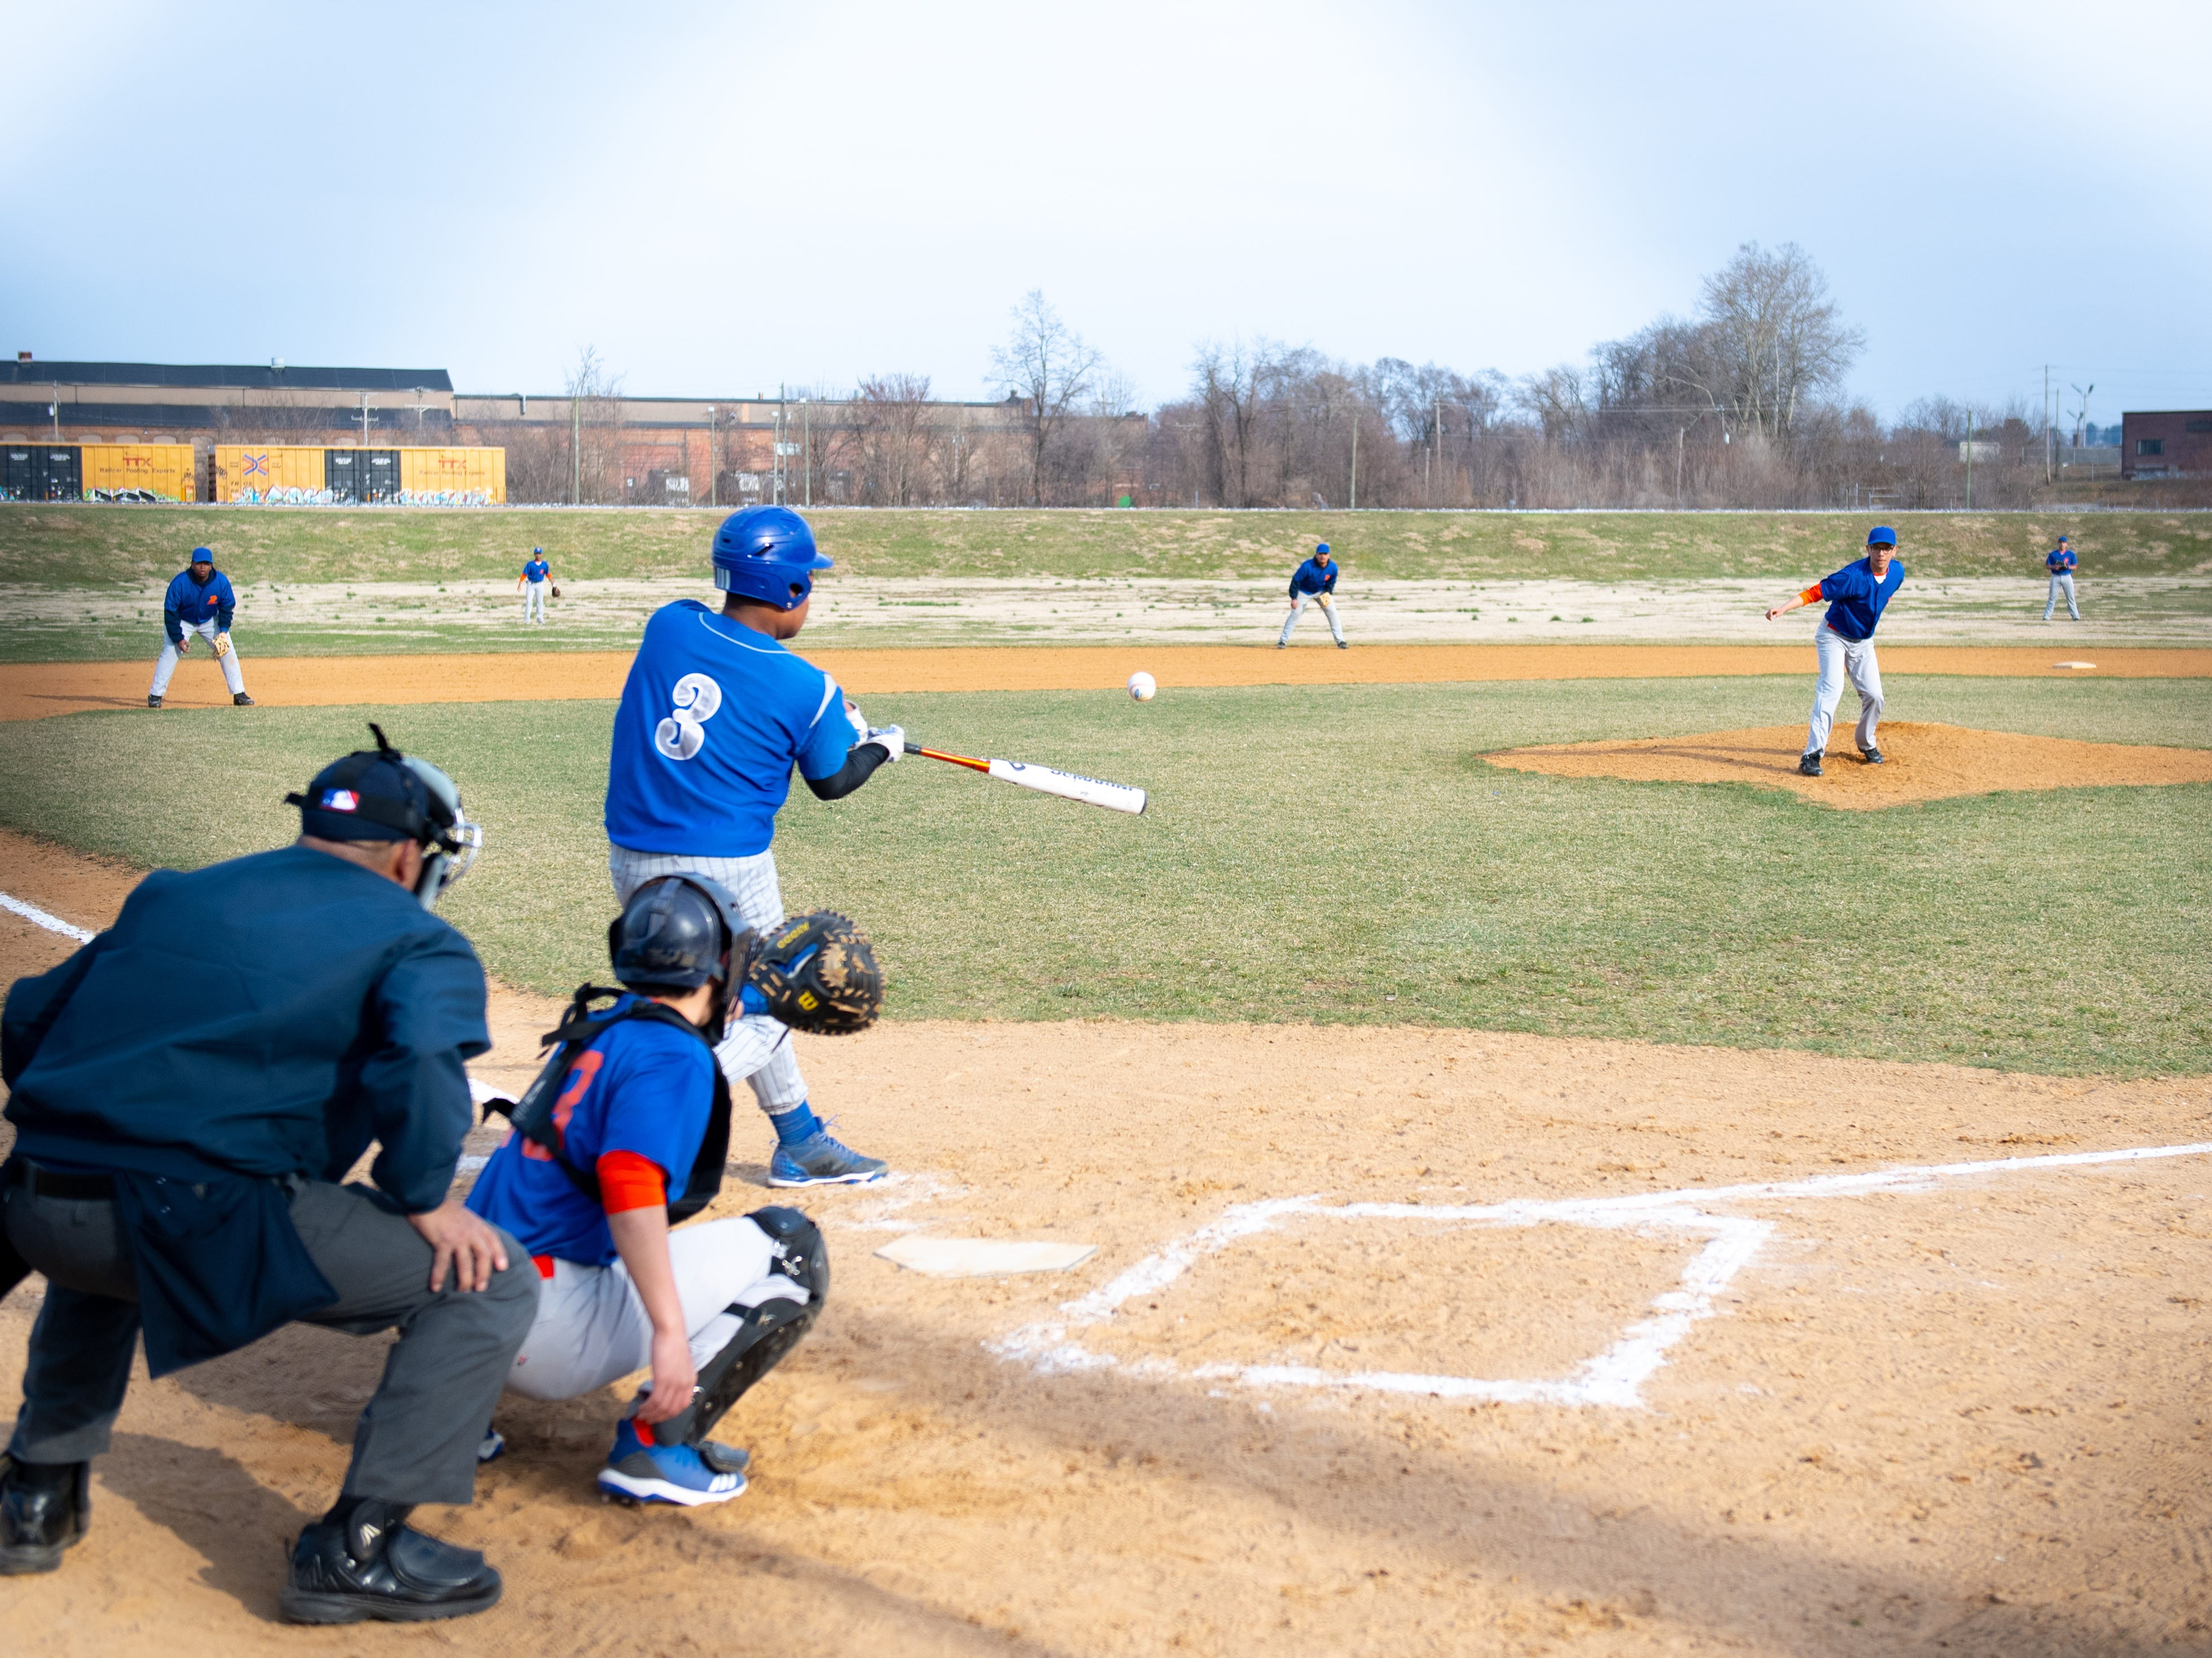 Steel High connects with the ball during their scrimmage against York High, March 20, 2019 at Small Athletic Field.